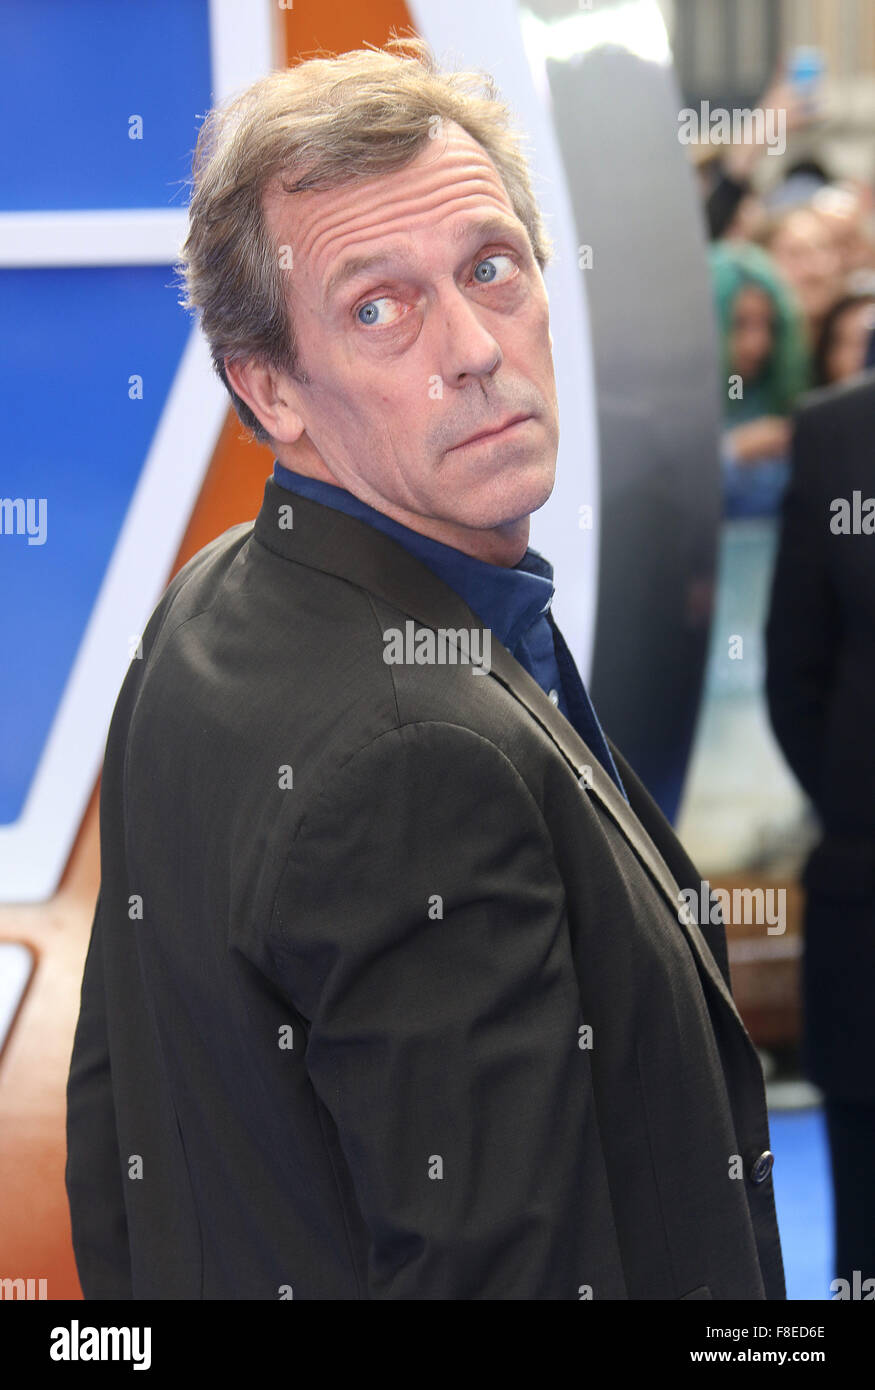 May 17, 2015 - London, England, UK - Hugh Laurie attending Tomorrowland: A World Beyond European Premiere, Odeon - Stock Image